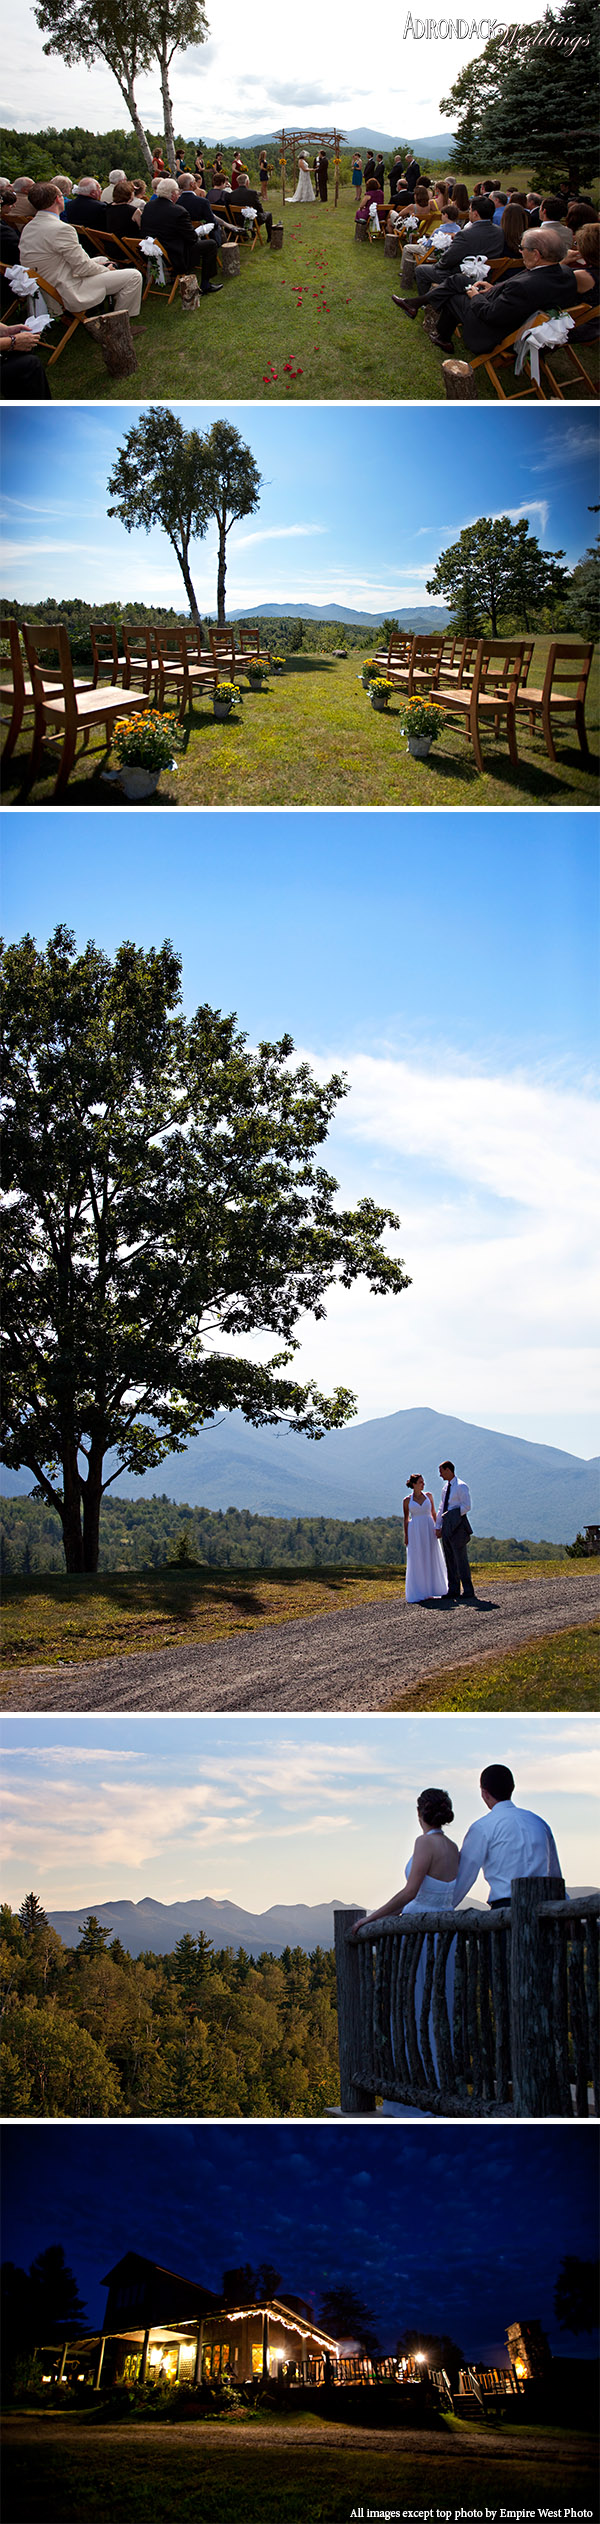 The Mountain House | Adirondack Weddings Magazine